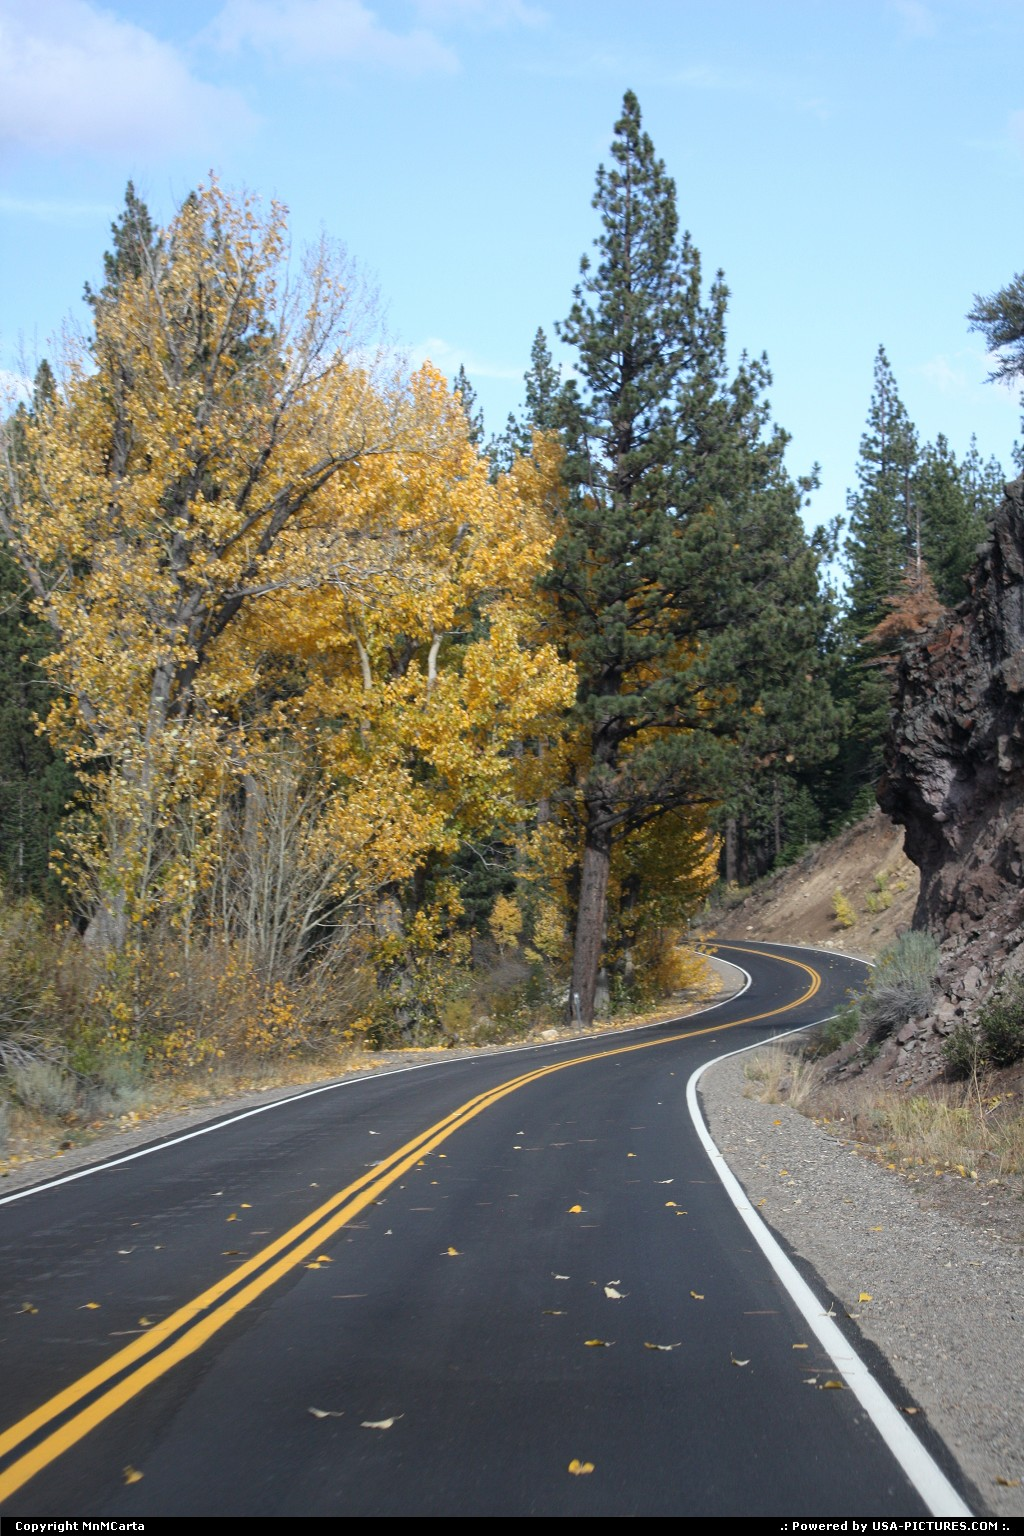 Picture by MnMCarta:Tahoe CityCalifornialake tahoe,drive,honeymoon,nature,fall,autumn,color